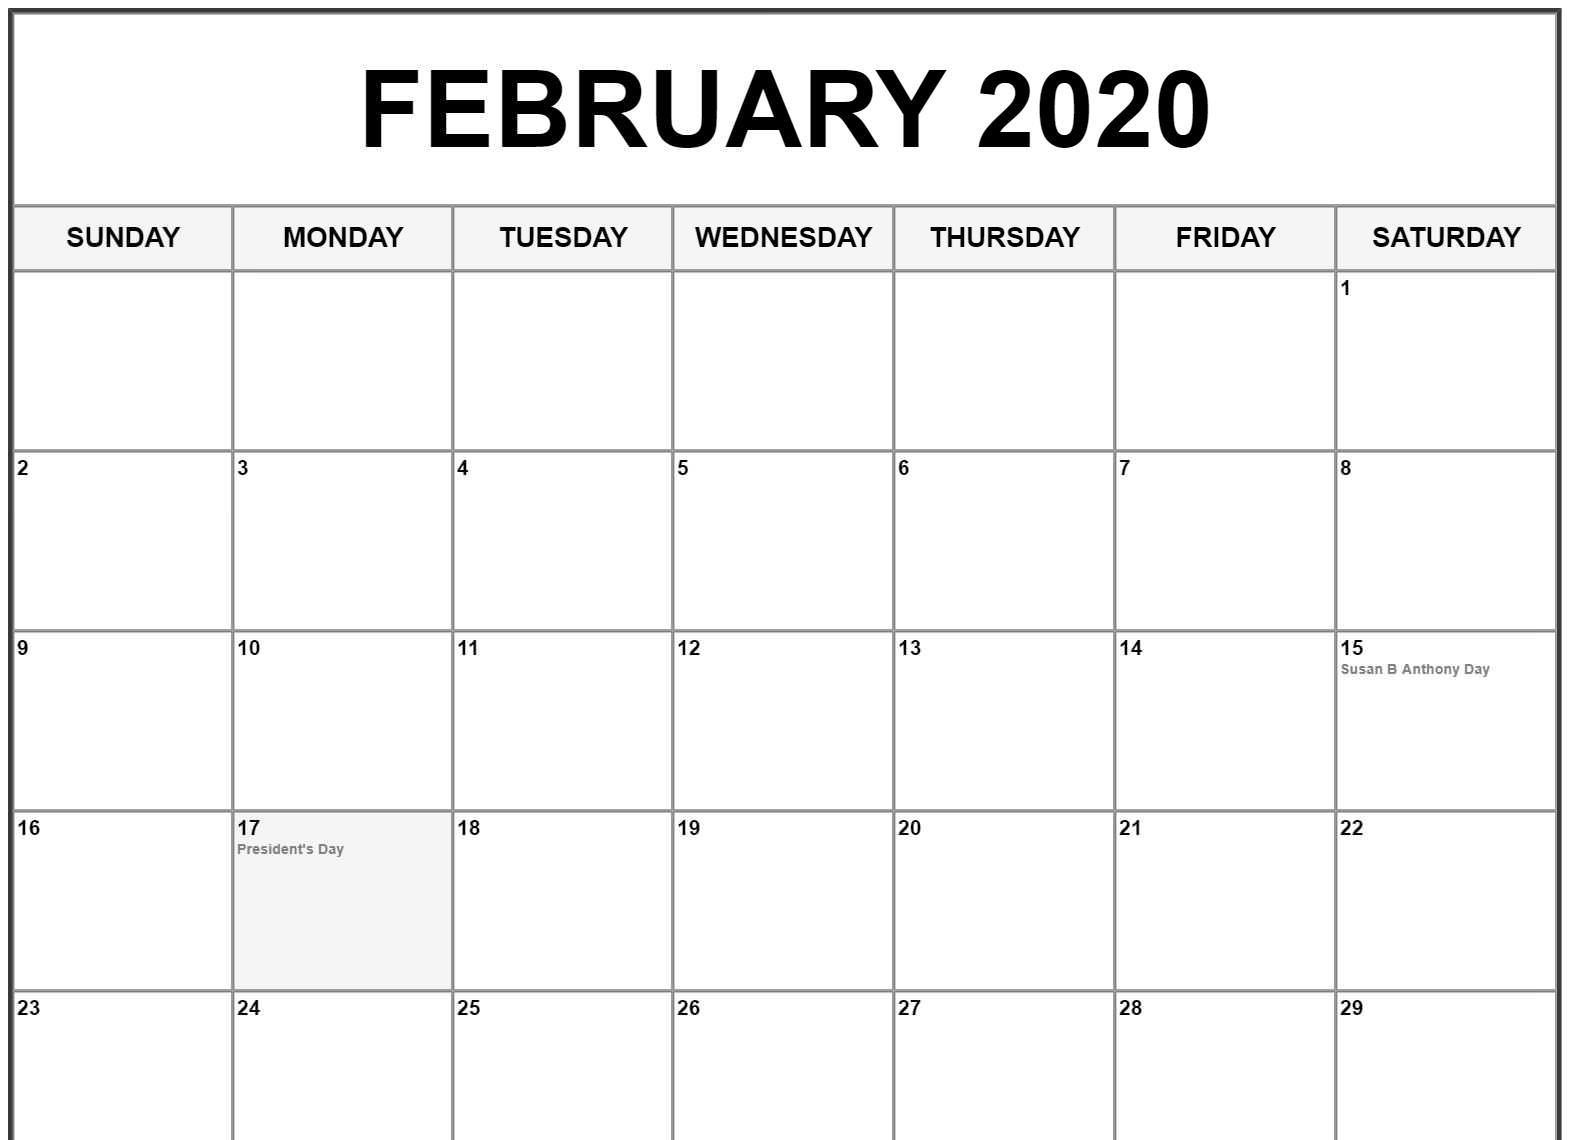 Free Printable Christmas Calendar 2020 February 2020 Calendar US Holidays | February calendar, 2020